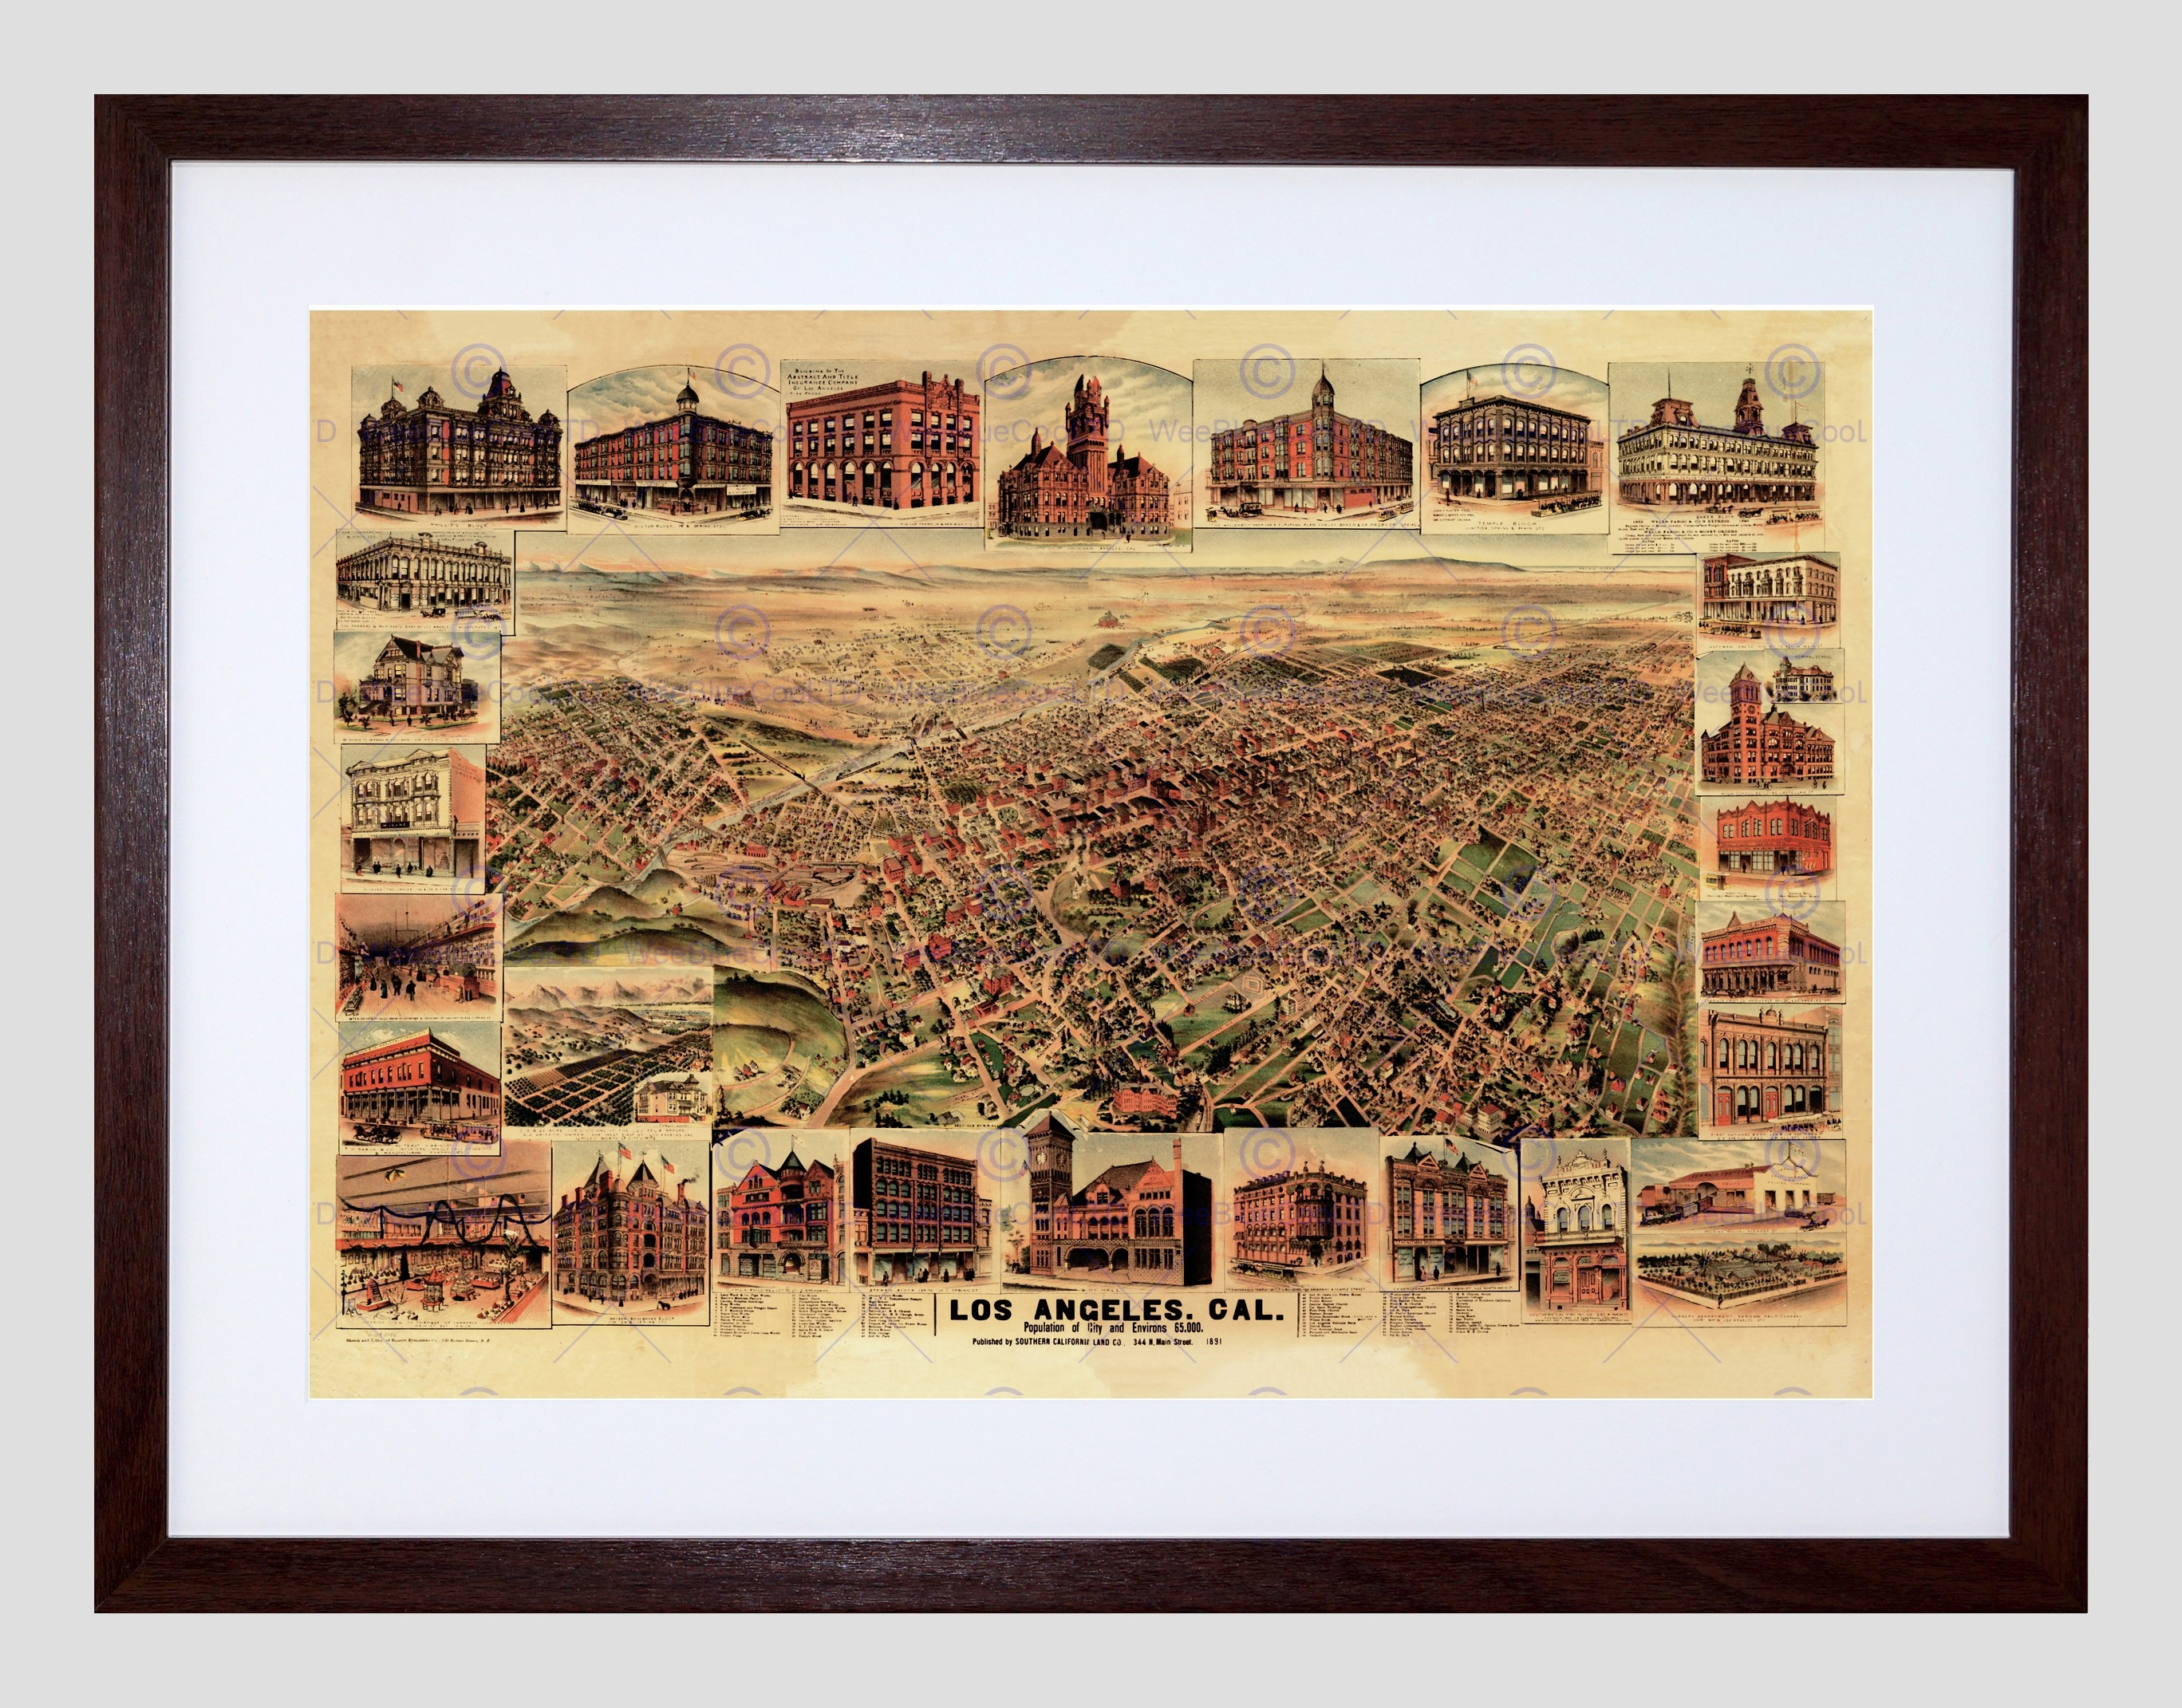 Map Los Angeles California 1891 Framed Art Print Poster F12x10076 Inside Recent Los Angeles Framed Art Prints (View 15 of 15)